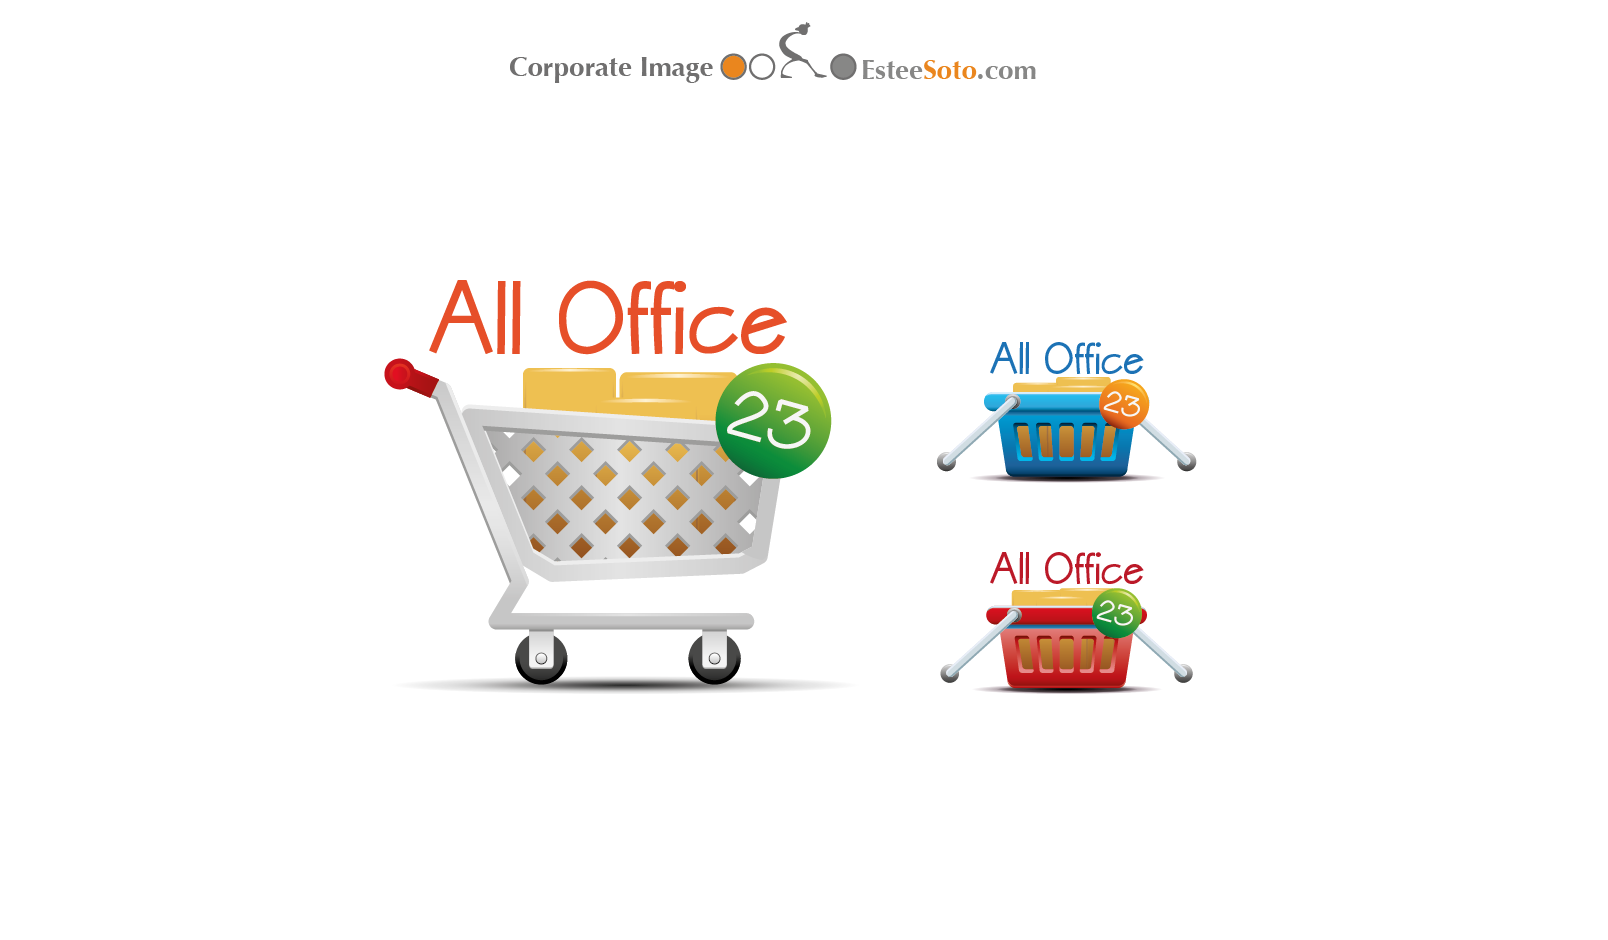 All Office 23